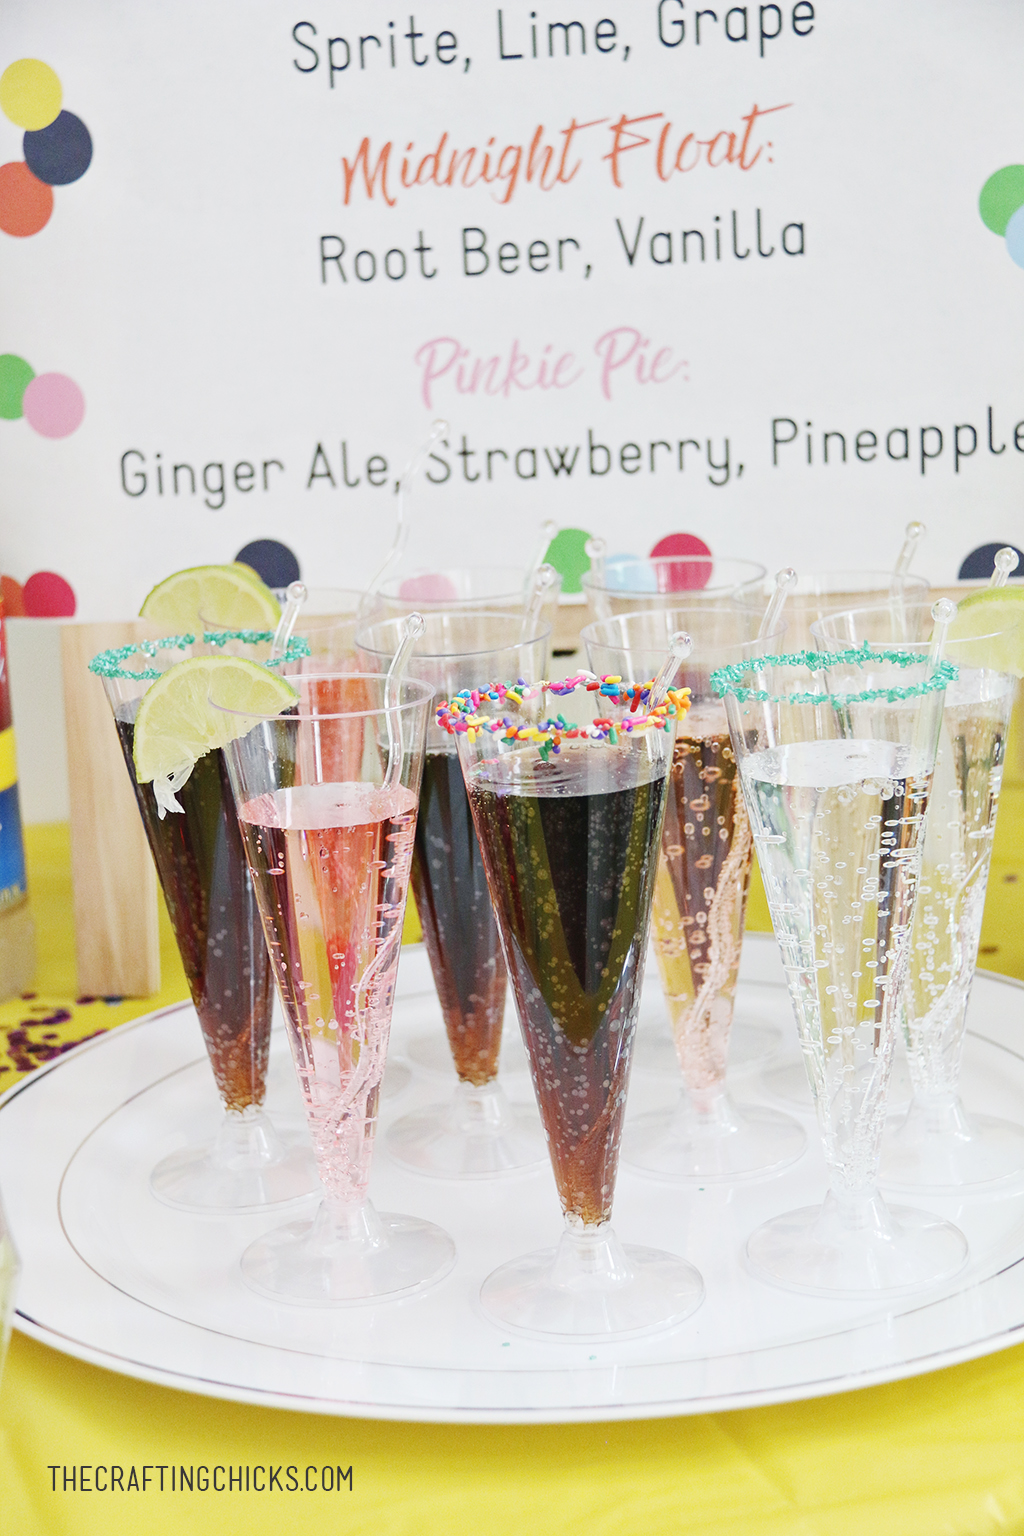 Kids' Mocktail drinks for New Year's Eve, Mocktails for Kids'